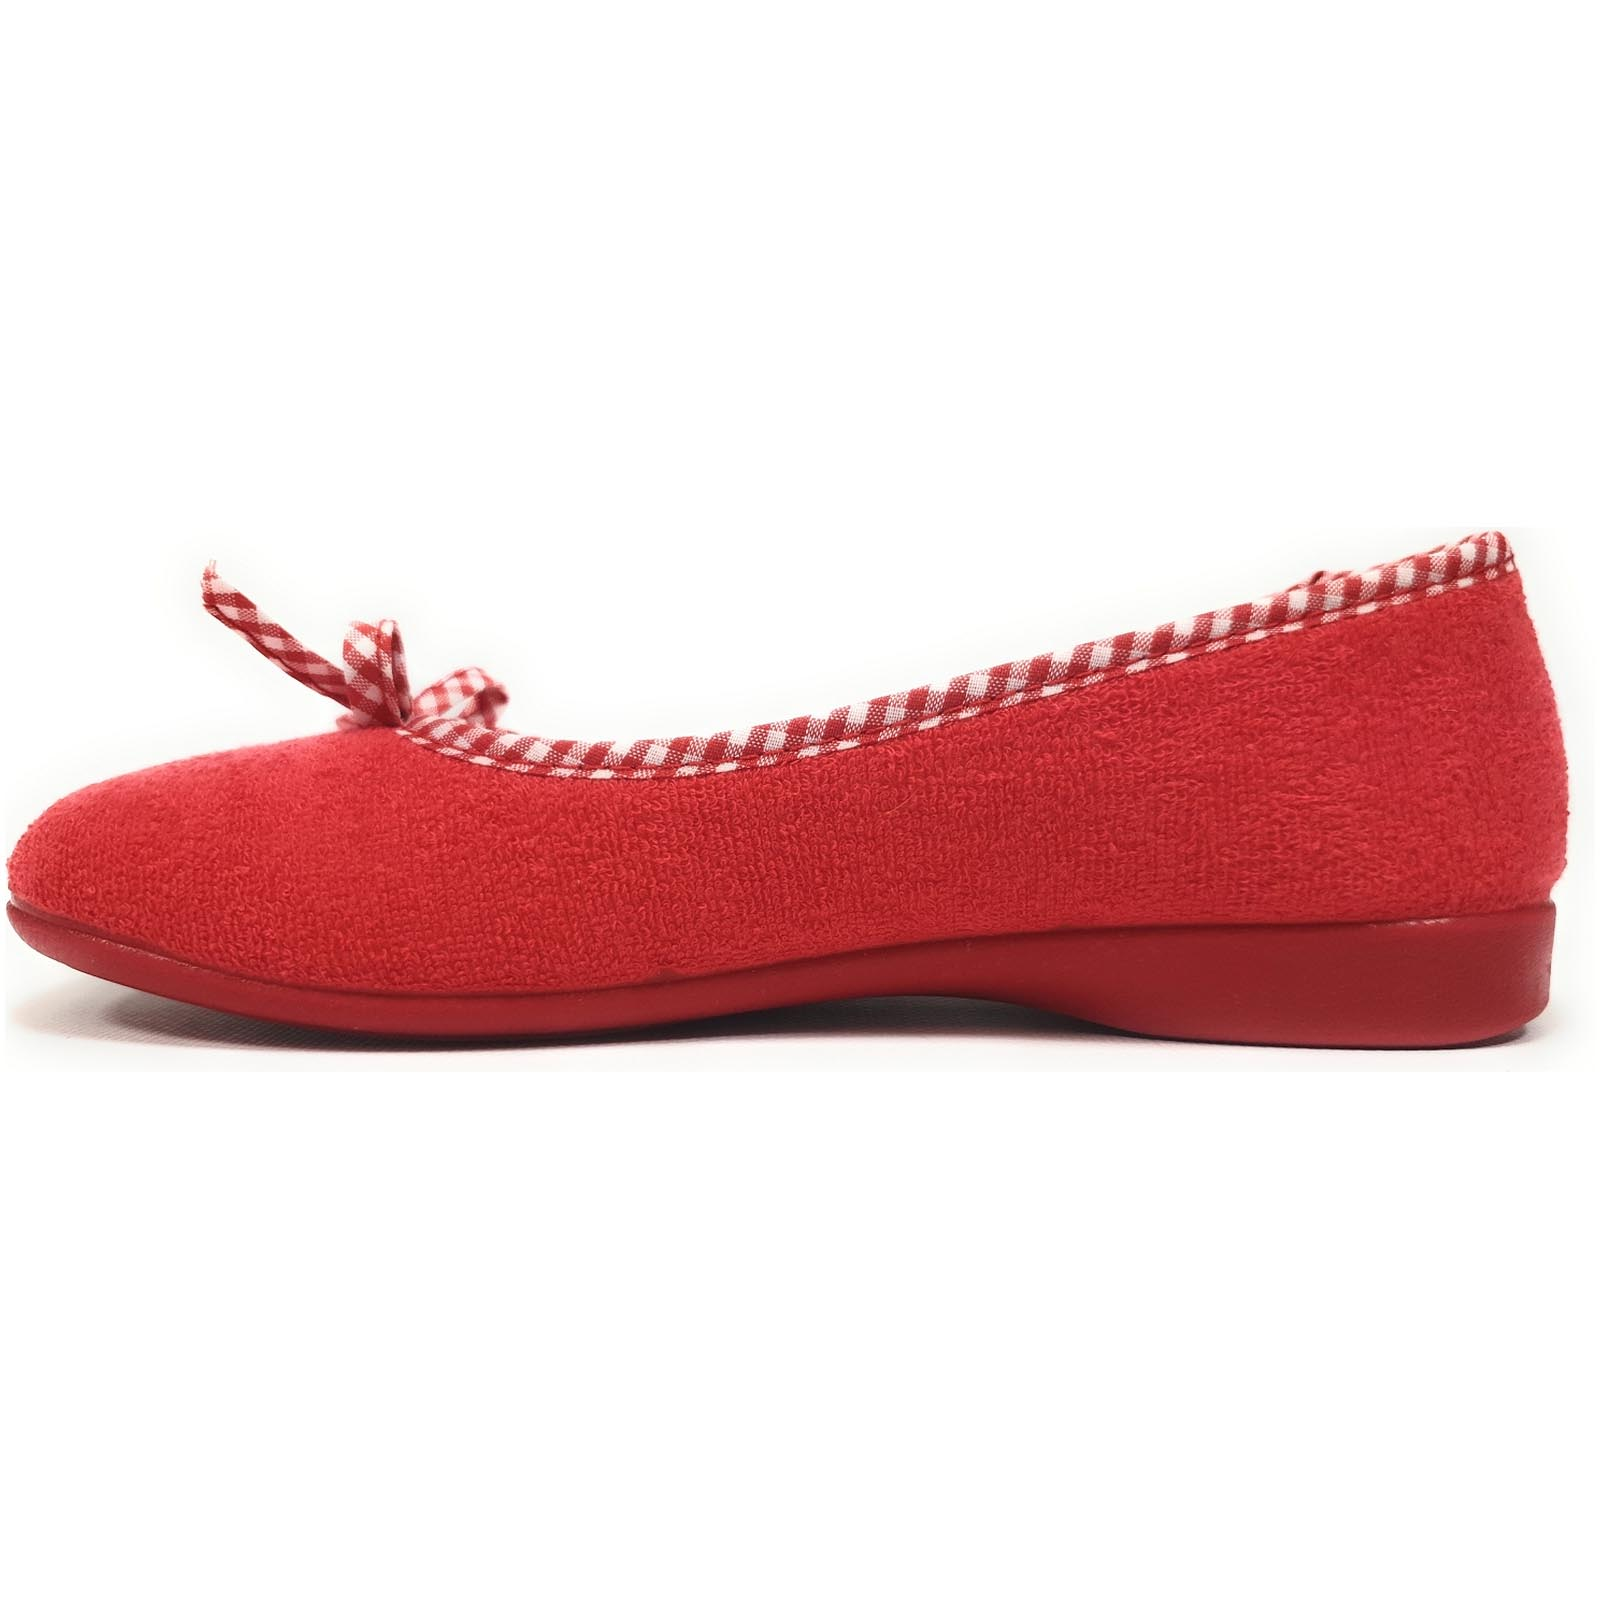 Fargeot chaussons elisa rouge8044601_6